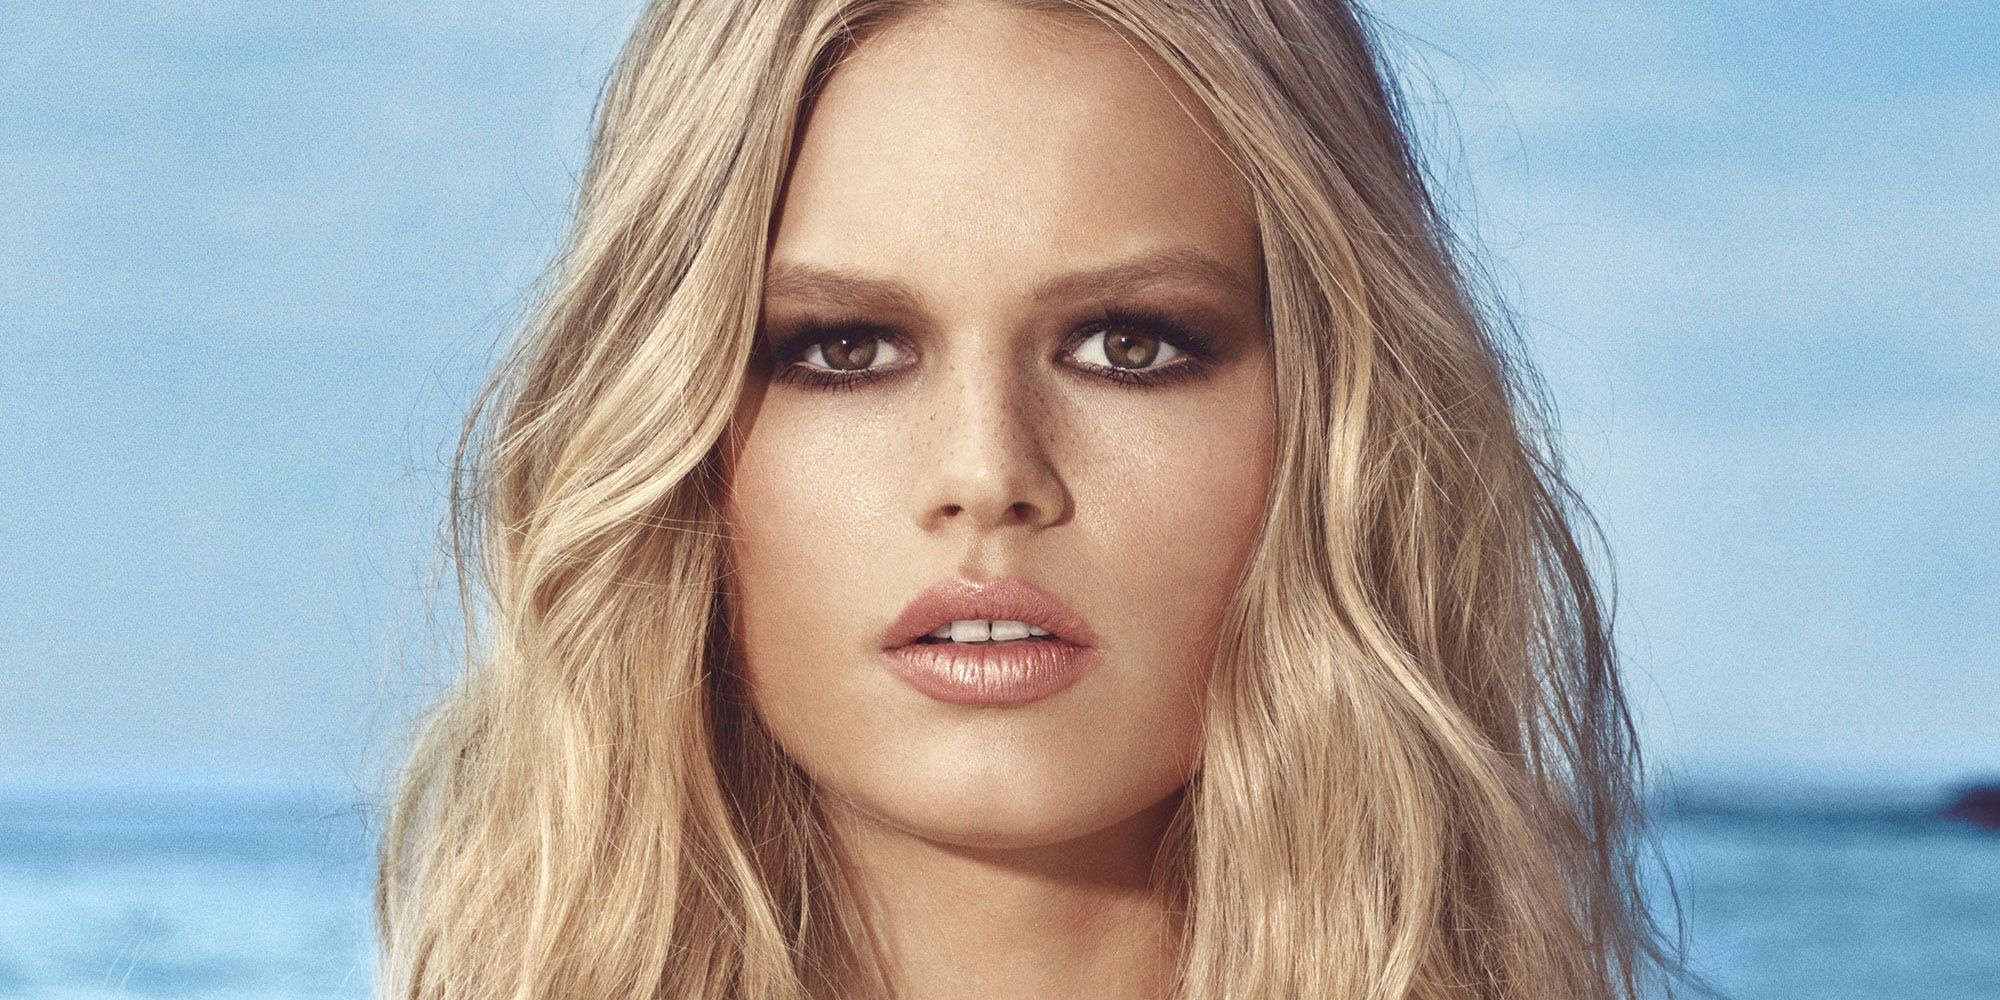 ICloud Anna Ewers nudes (99 photo), Ass, Hot, Boobs, cleavage 2018